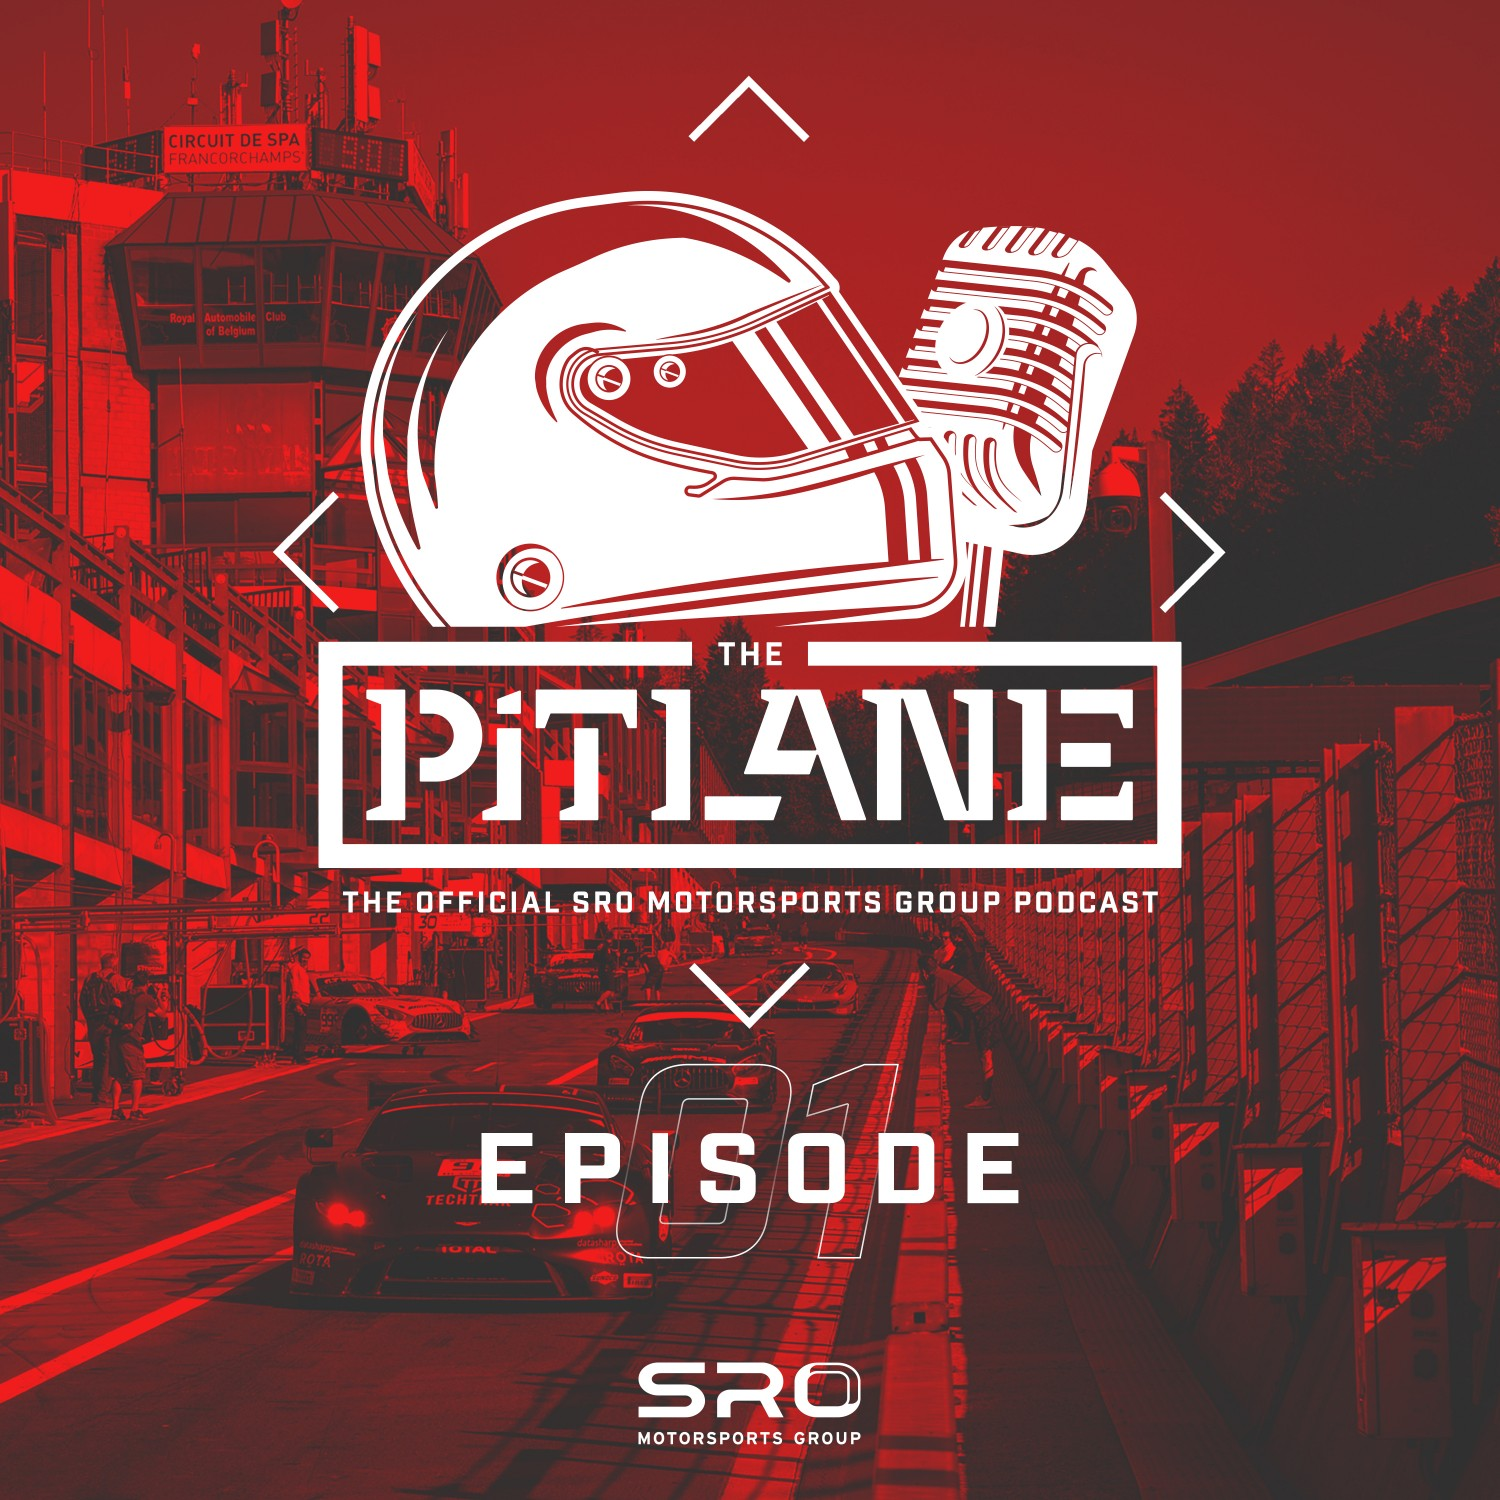 SRO Motorsports Group adds new depth to global racing coverage with The Pitlane podcast